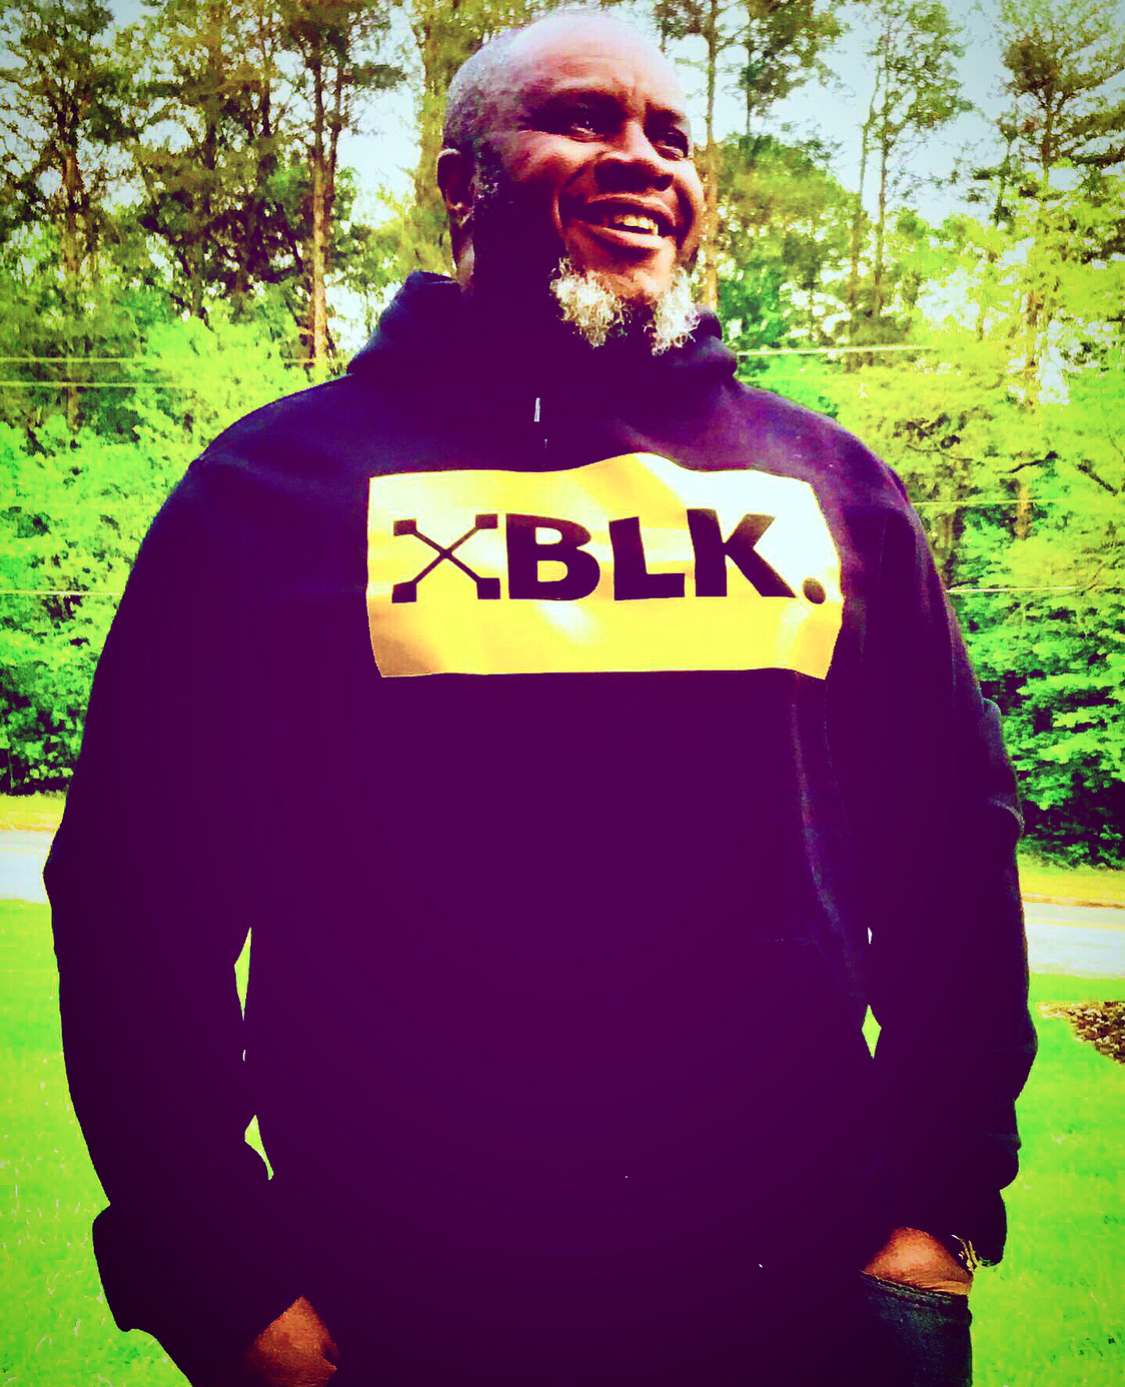 XBLK Hooded BLK GOLD